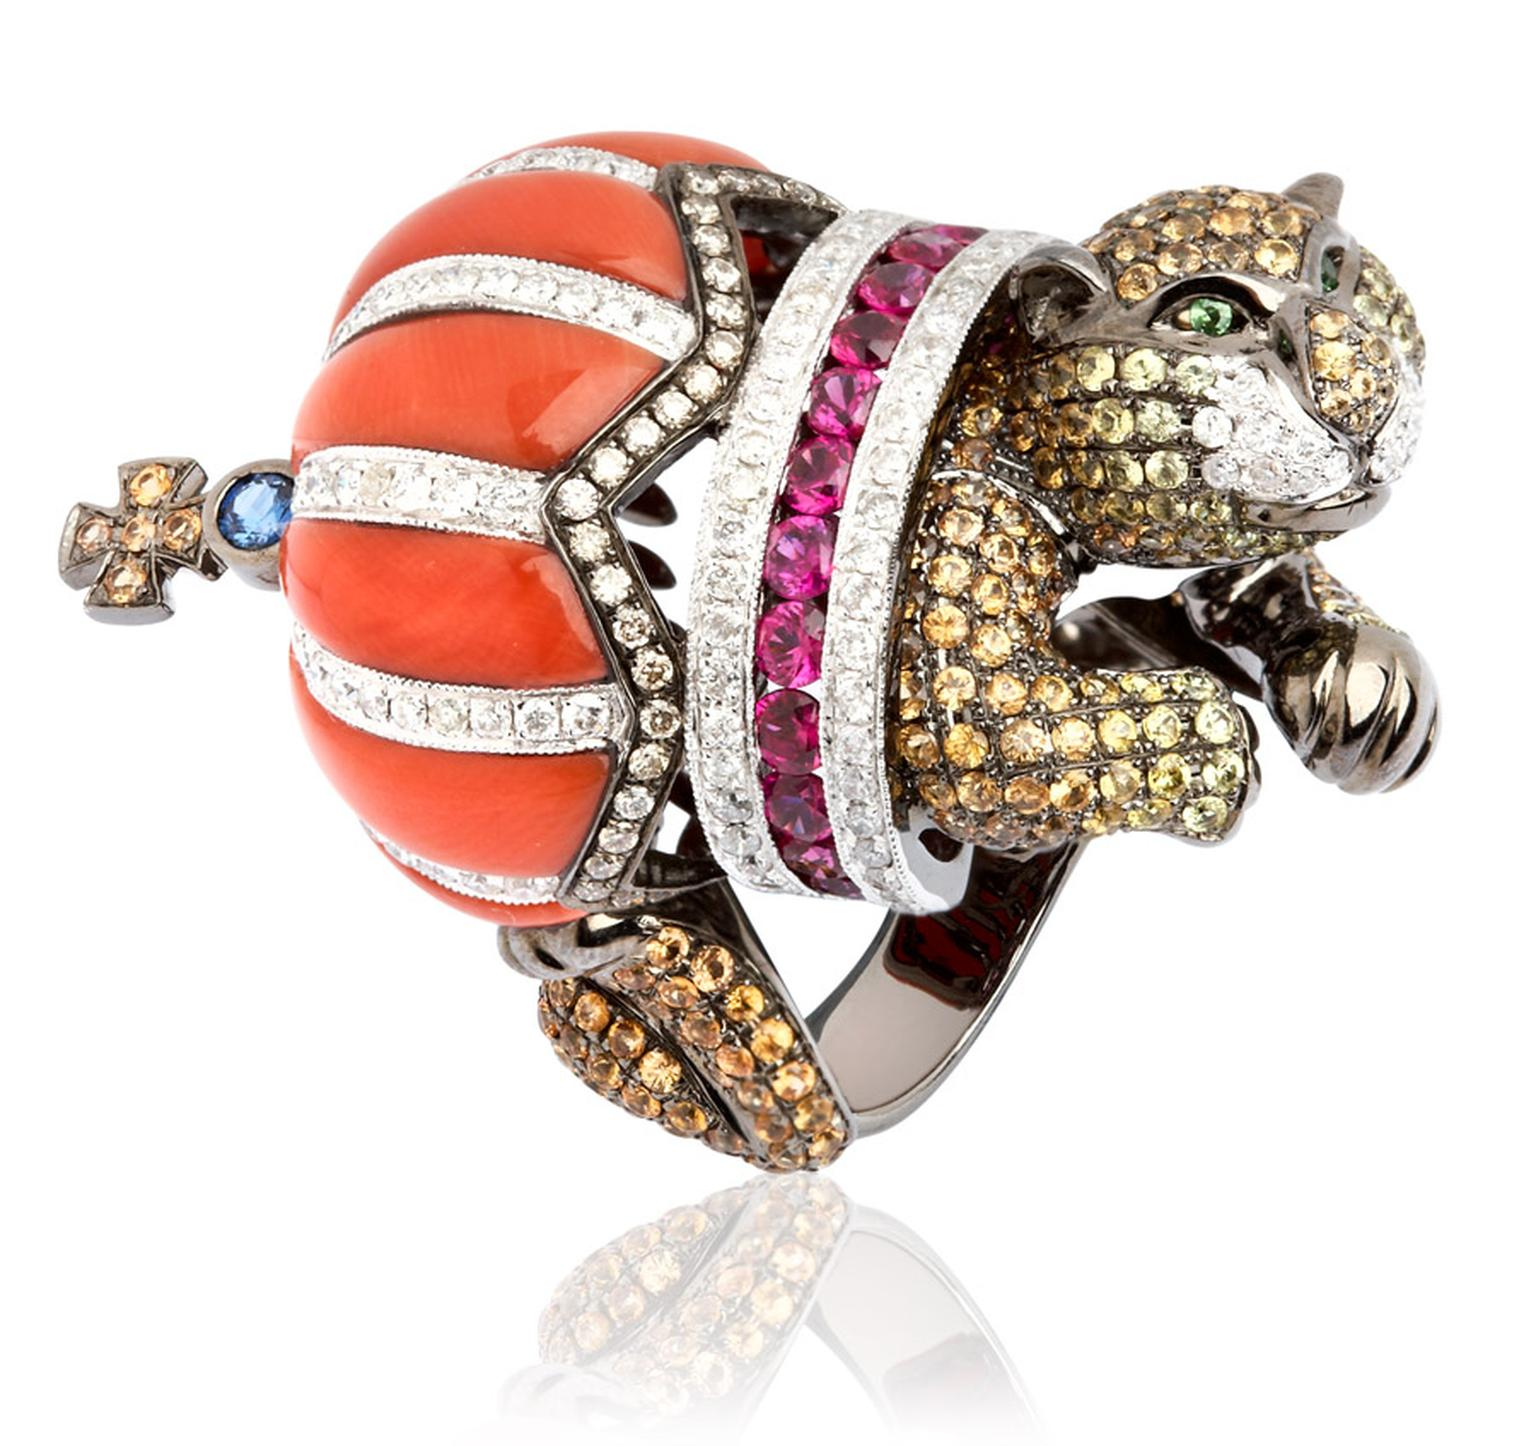 Wendy-Yue-Fantasie-Jubilee-18ct-yellow-gold-diamond-sapphire-garnet-and-ruby-Lion-ring-by-Wendy-Yue-for-Annoushka_01